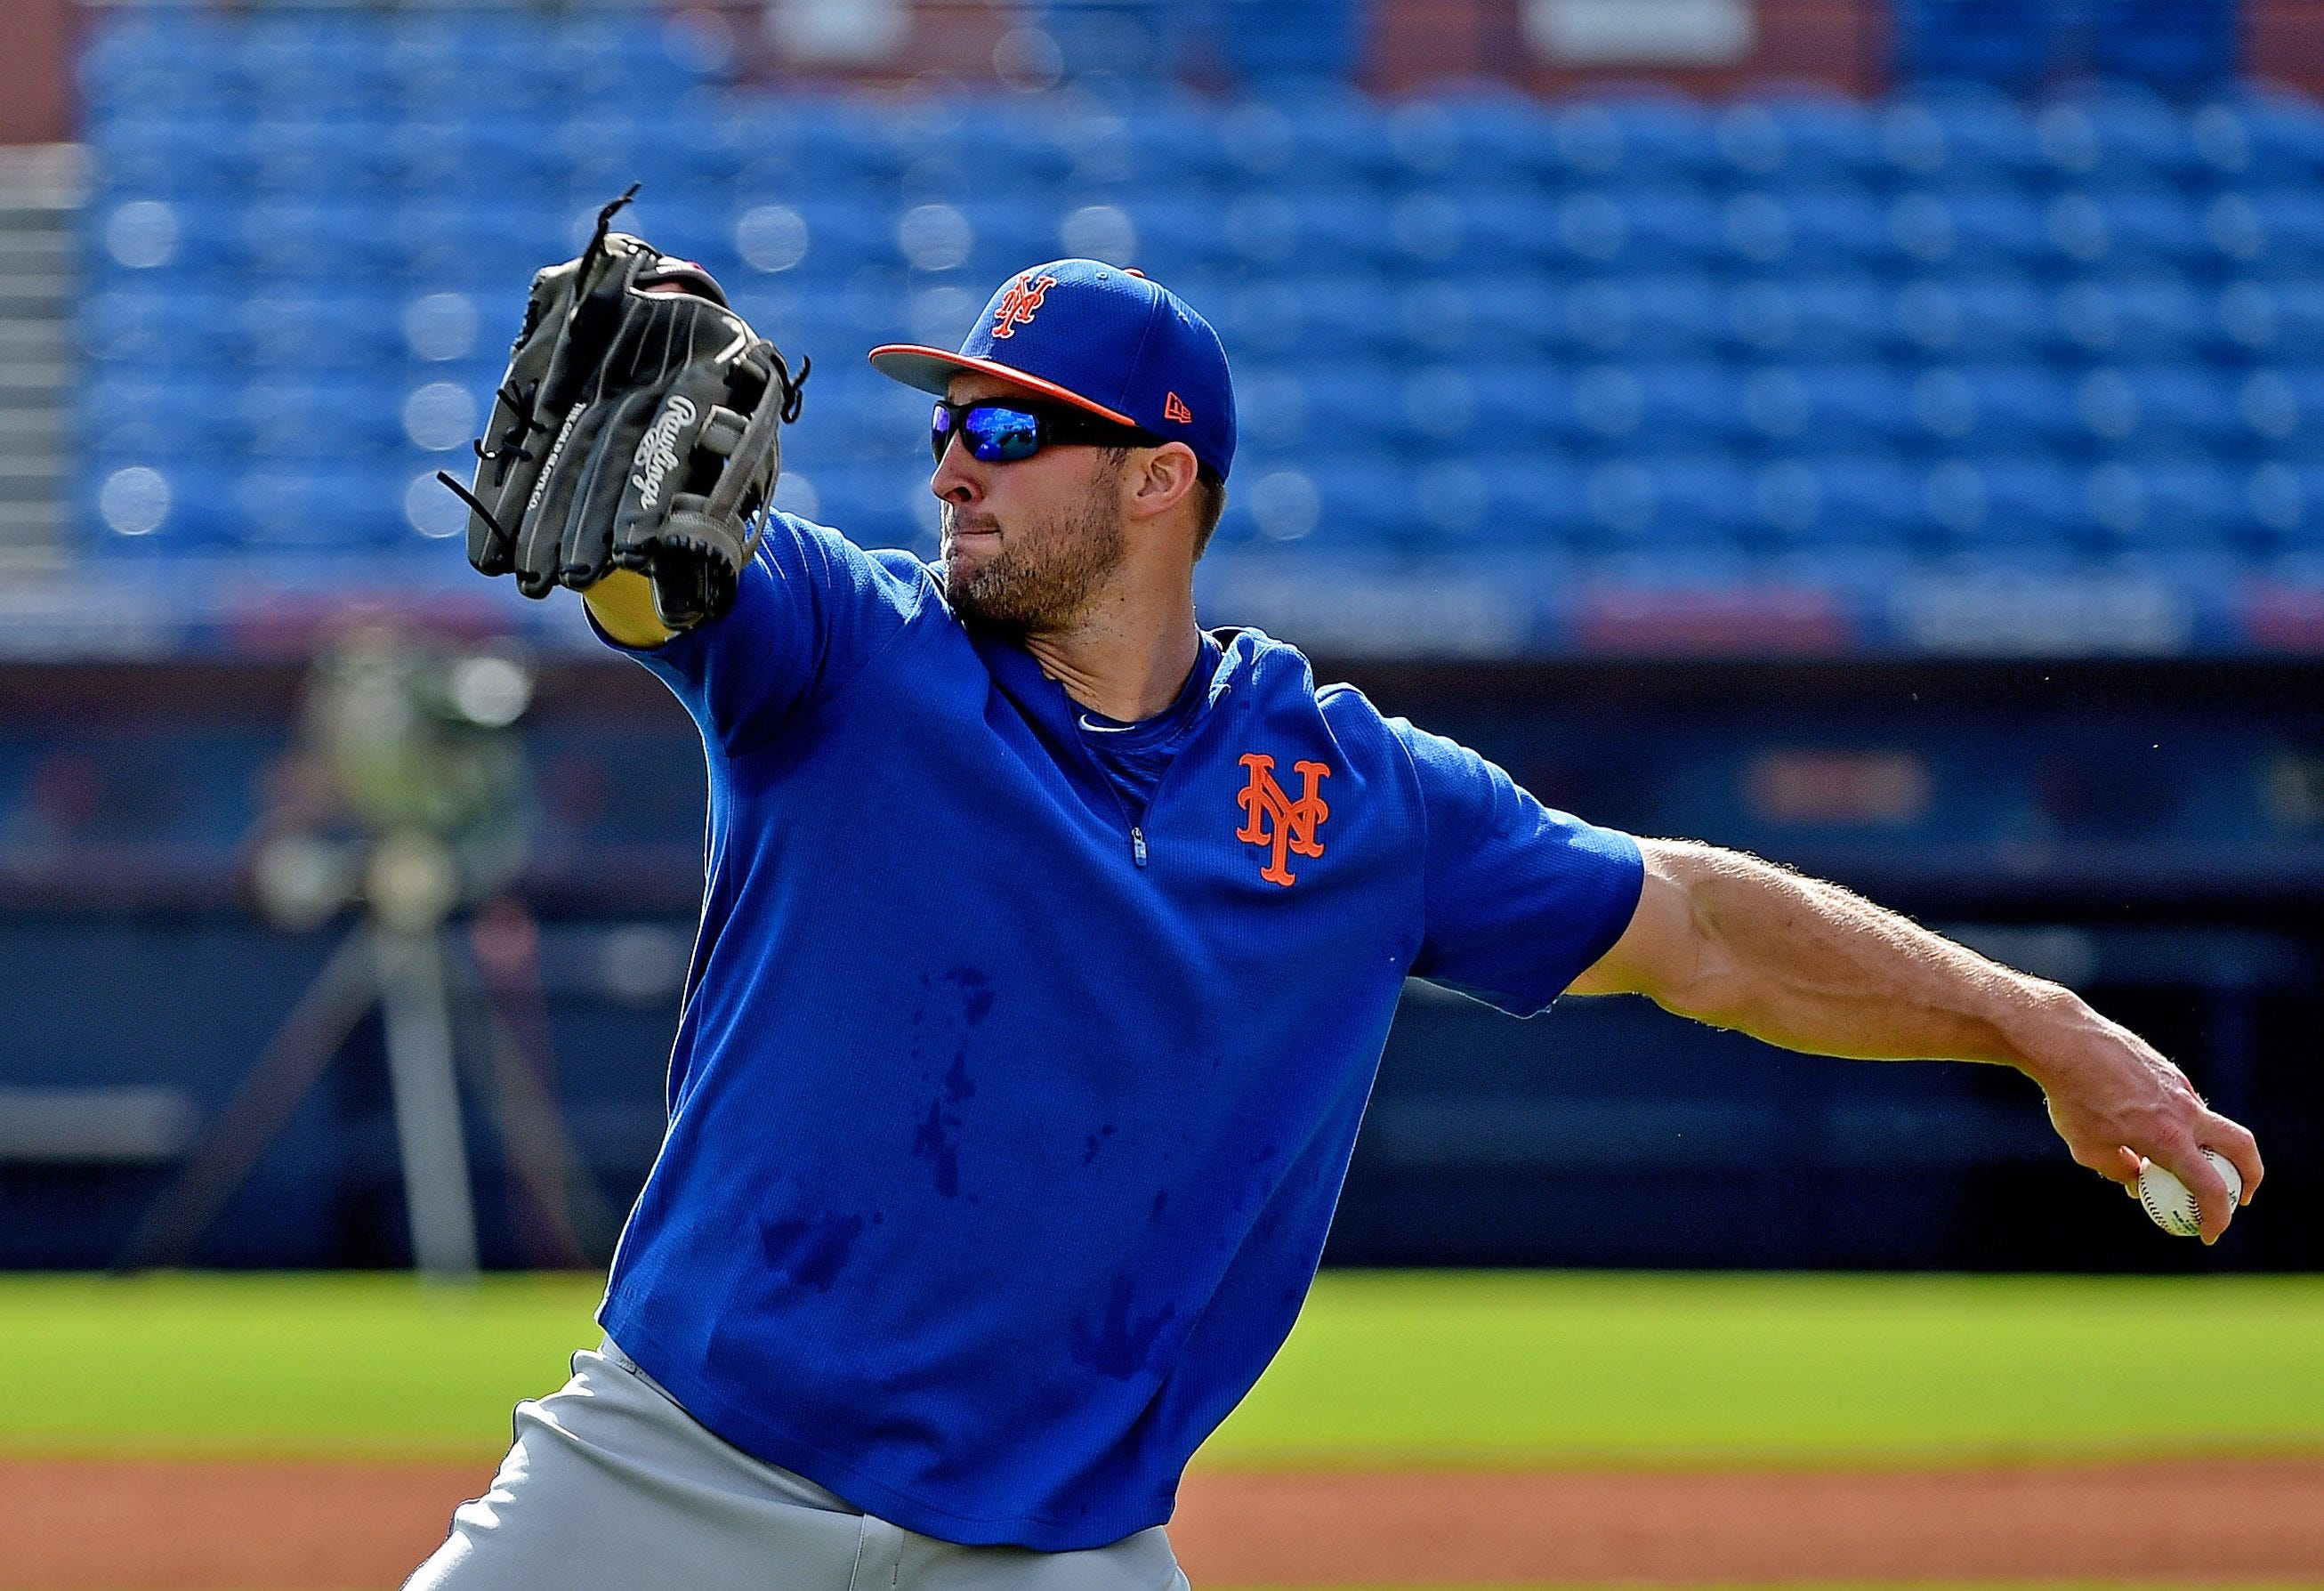 Opinion: Tim Tebow's commitment to baseball is inspiring